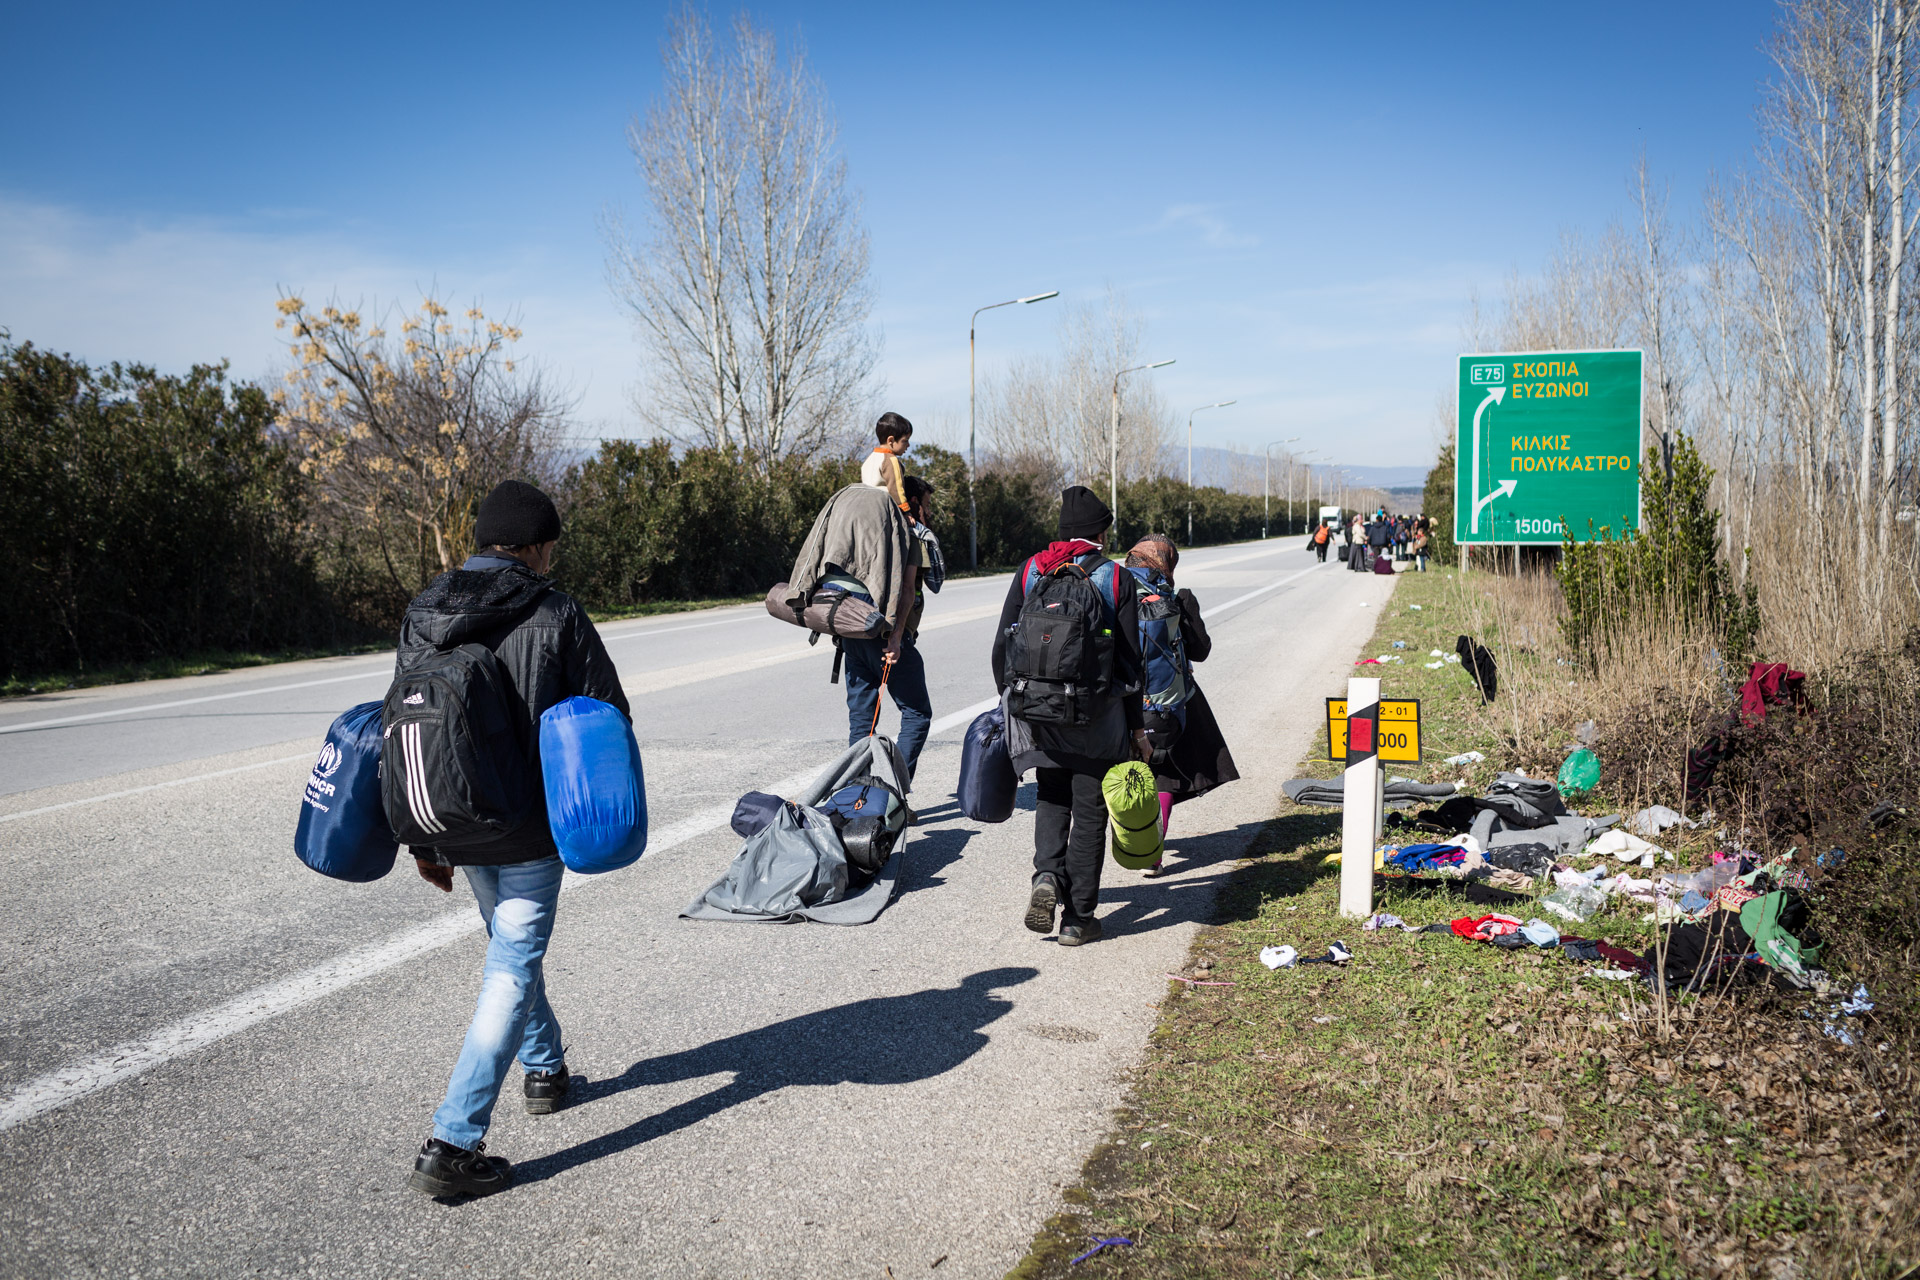 The family on the freeway from Polykastro to Idomeni. It is about 30 kilometres to the border, but everyone is excited to reach Macedonia soon.